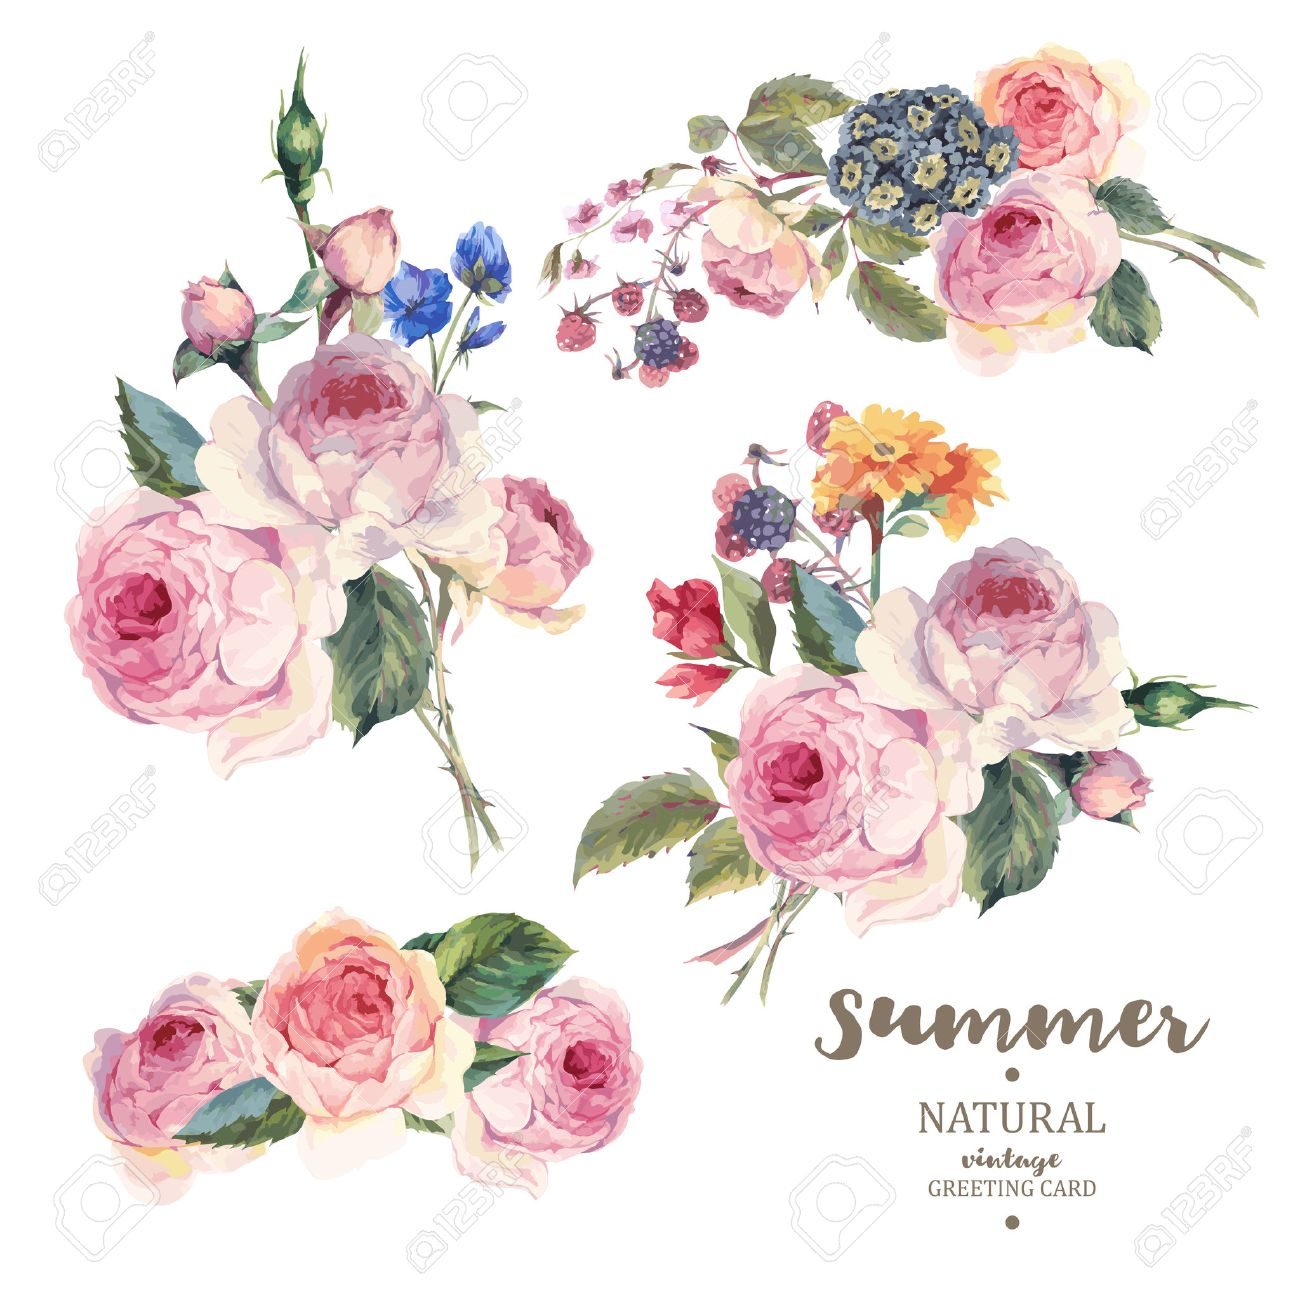 Set of vintage floral vector bouquet of English roses and wildflowers, botanical natural rose Illustration on white. Summer floral roses greeting card - 59797190